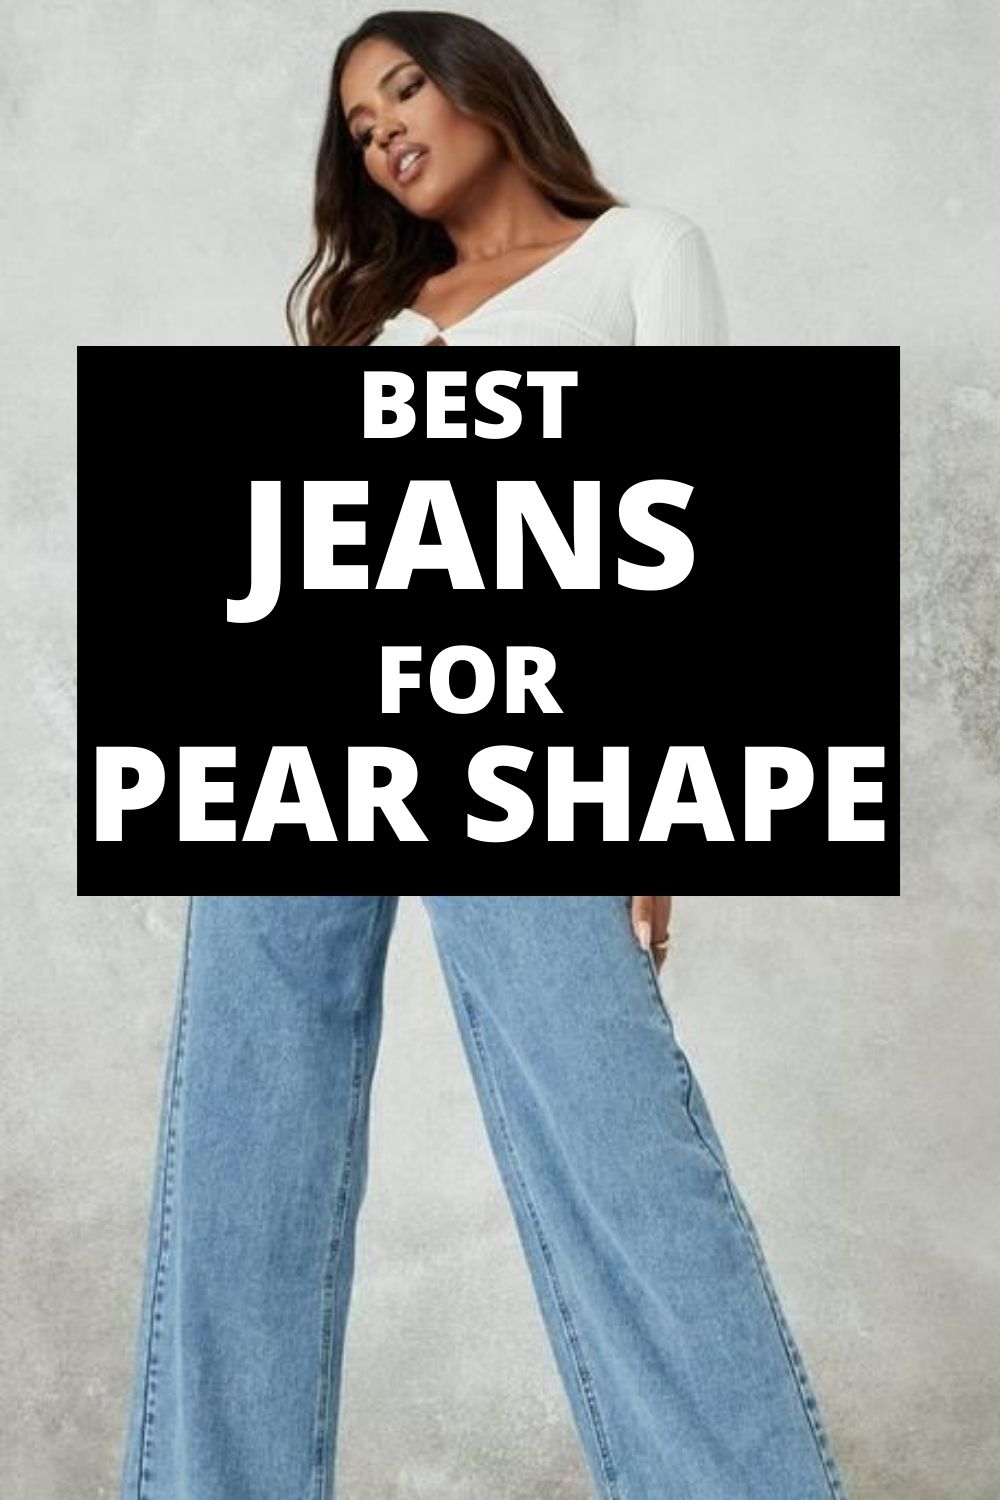 best jeans for a pear shape